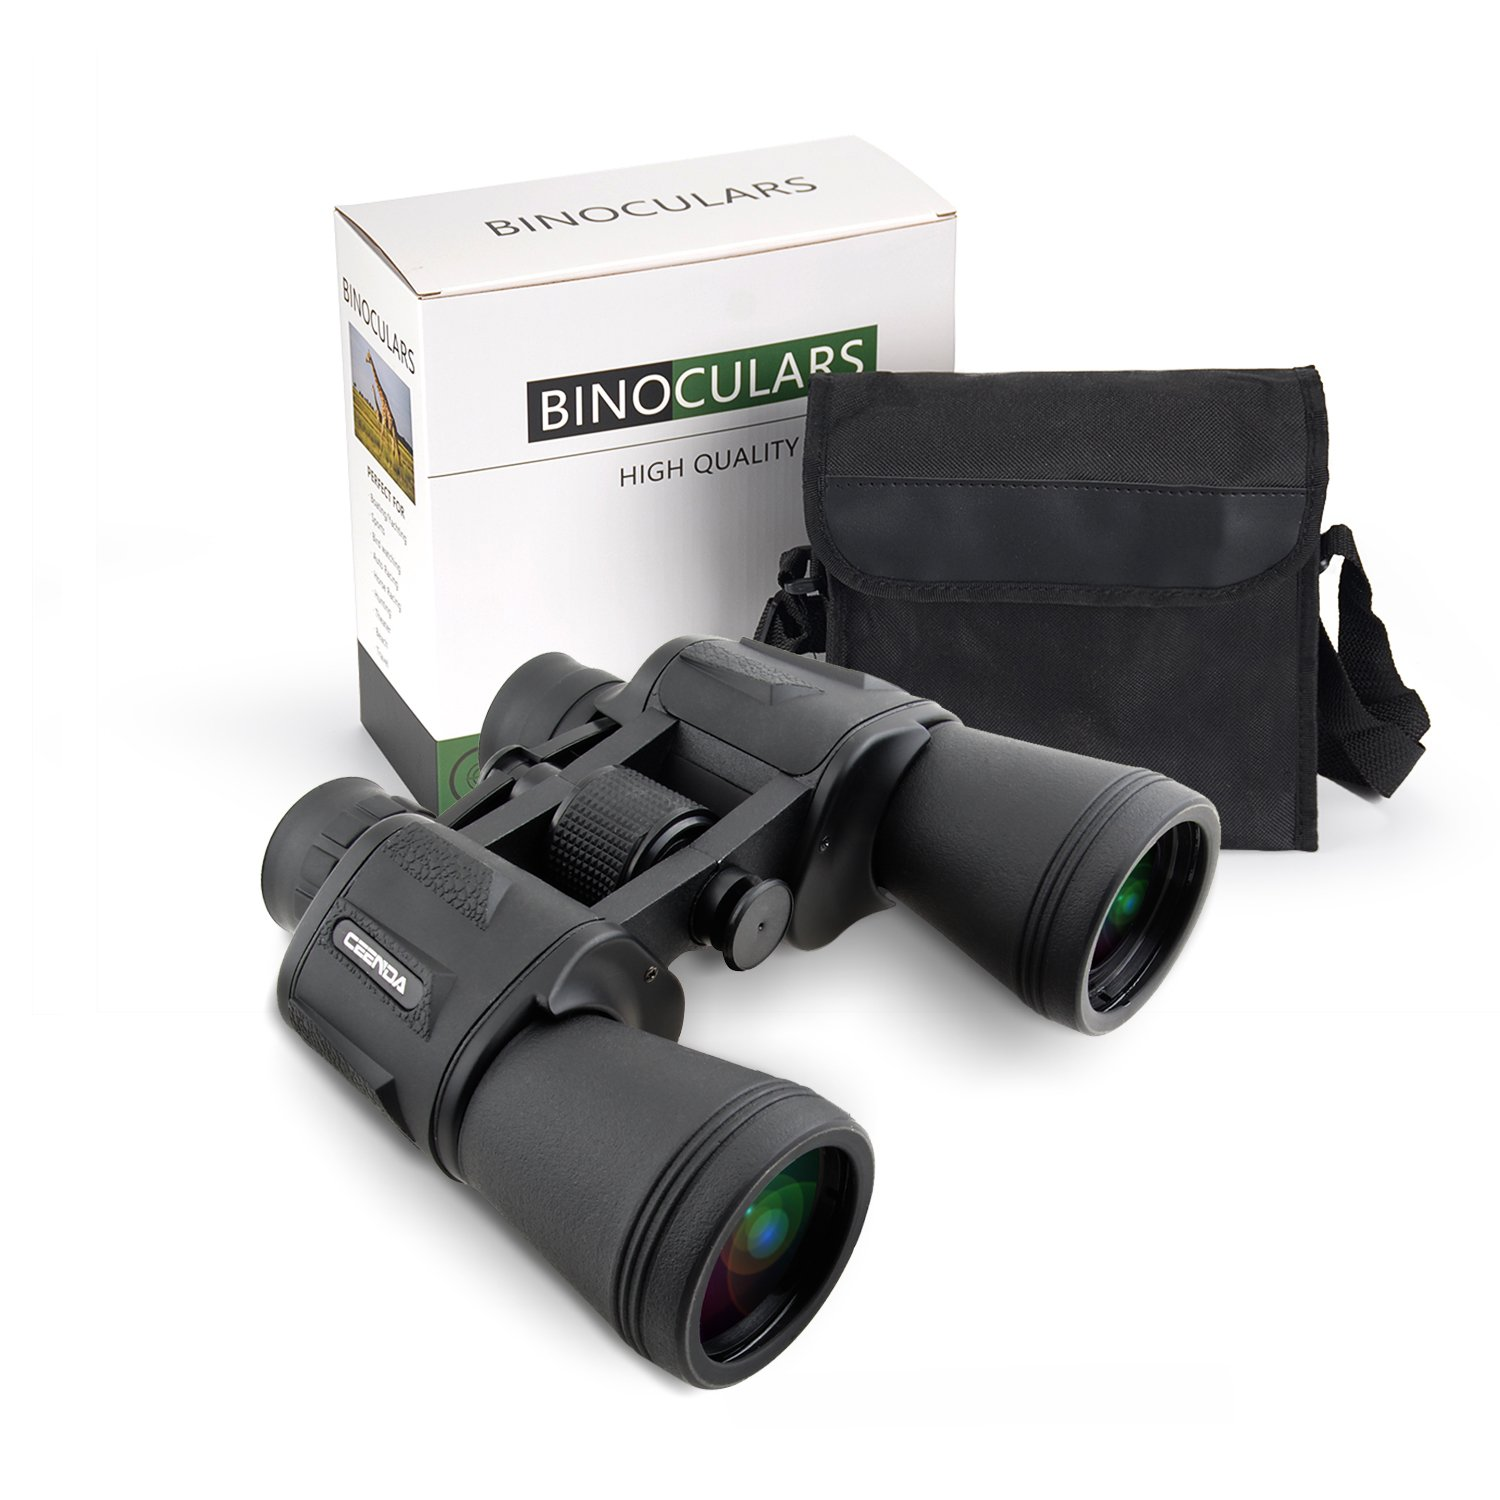 20x50 High Power Military Binoculars, BAK4, Large Eyepiece, Compact and Waterproof Binoculars Telescope with Multilayer-coated Lenses for Adult Bird Watching Astronomy Football Safari Sightseeing Clim by RONHAN